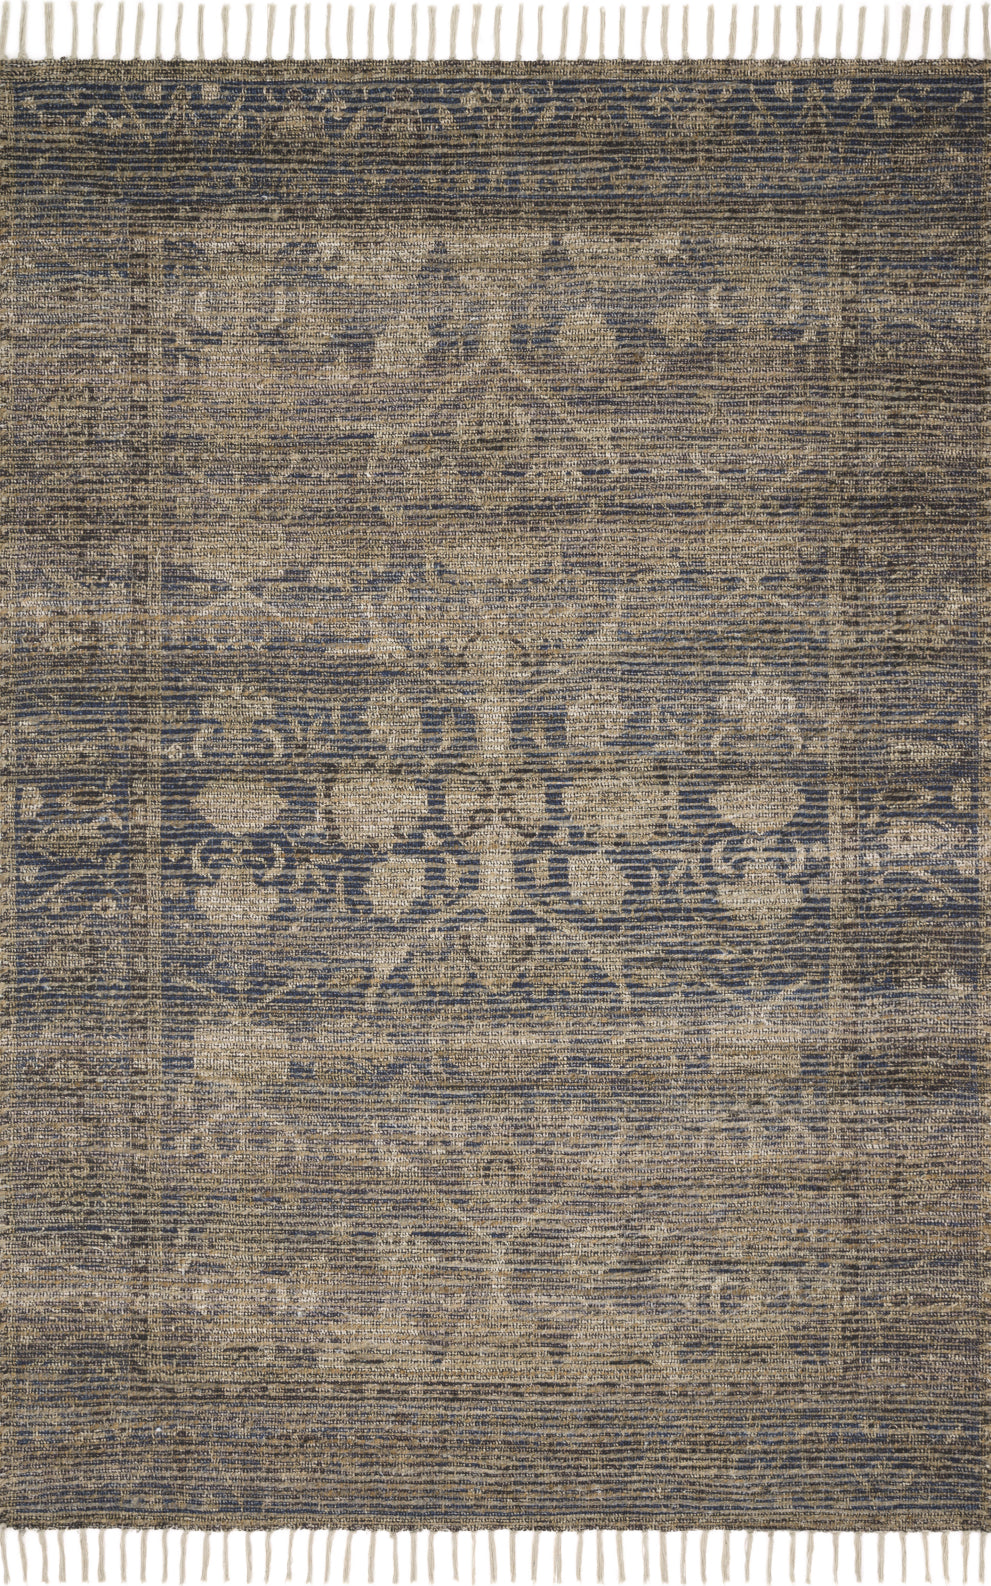 Loloi Cornelia COR-02 Indigo/Natural Area Rug by Justina Blakeney main image